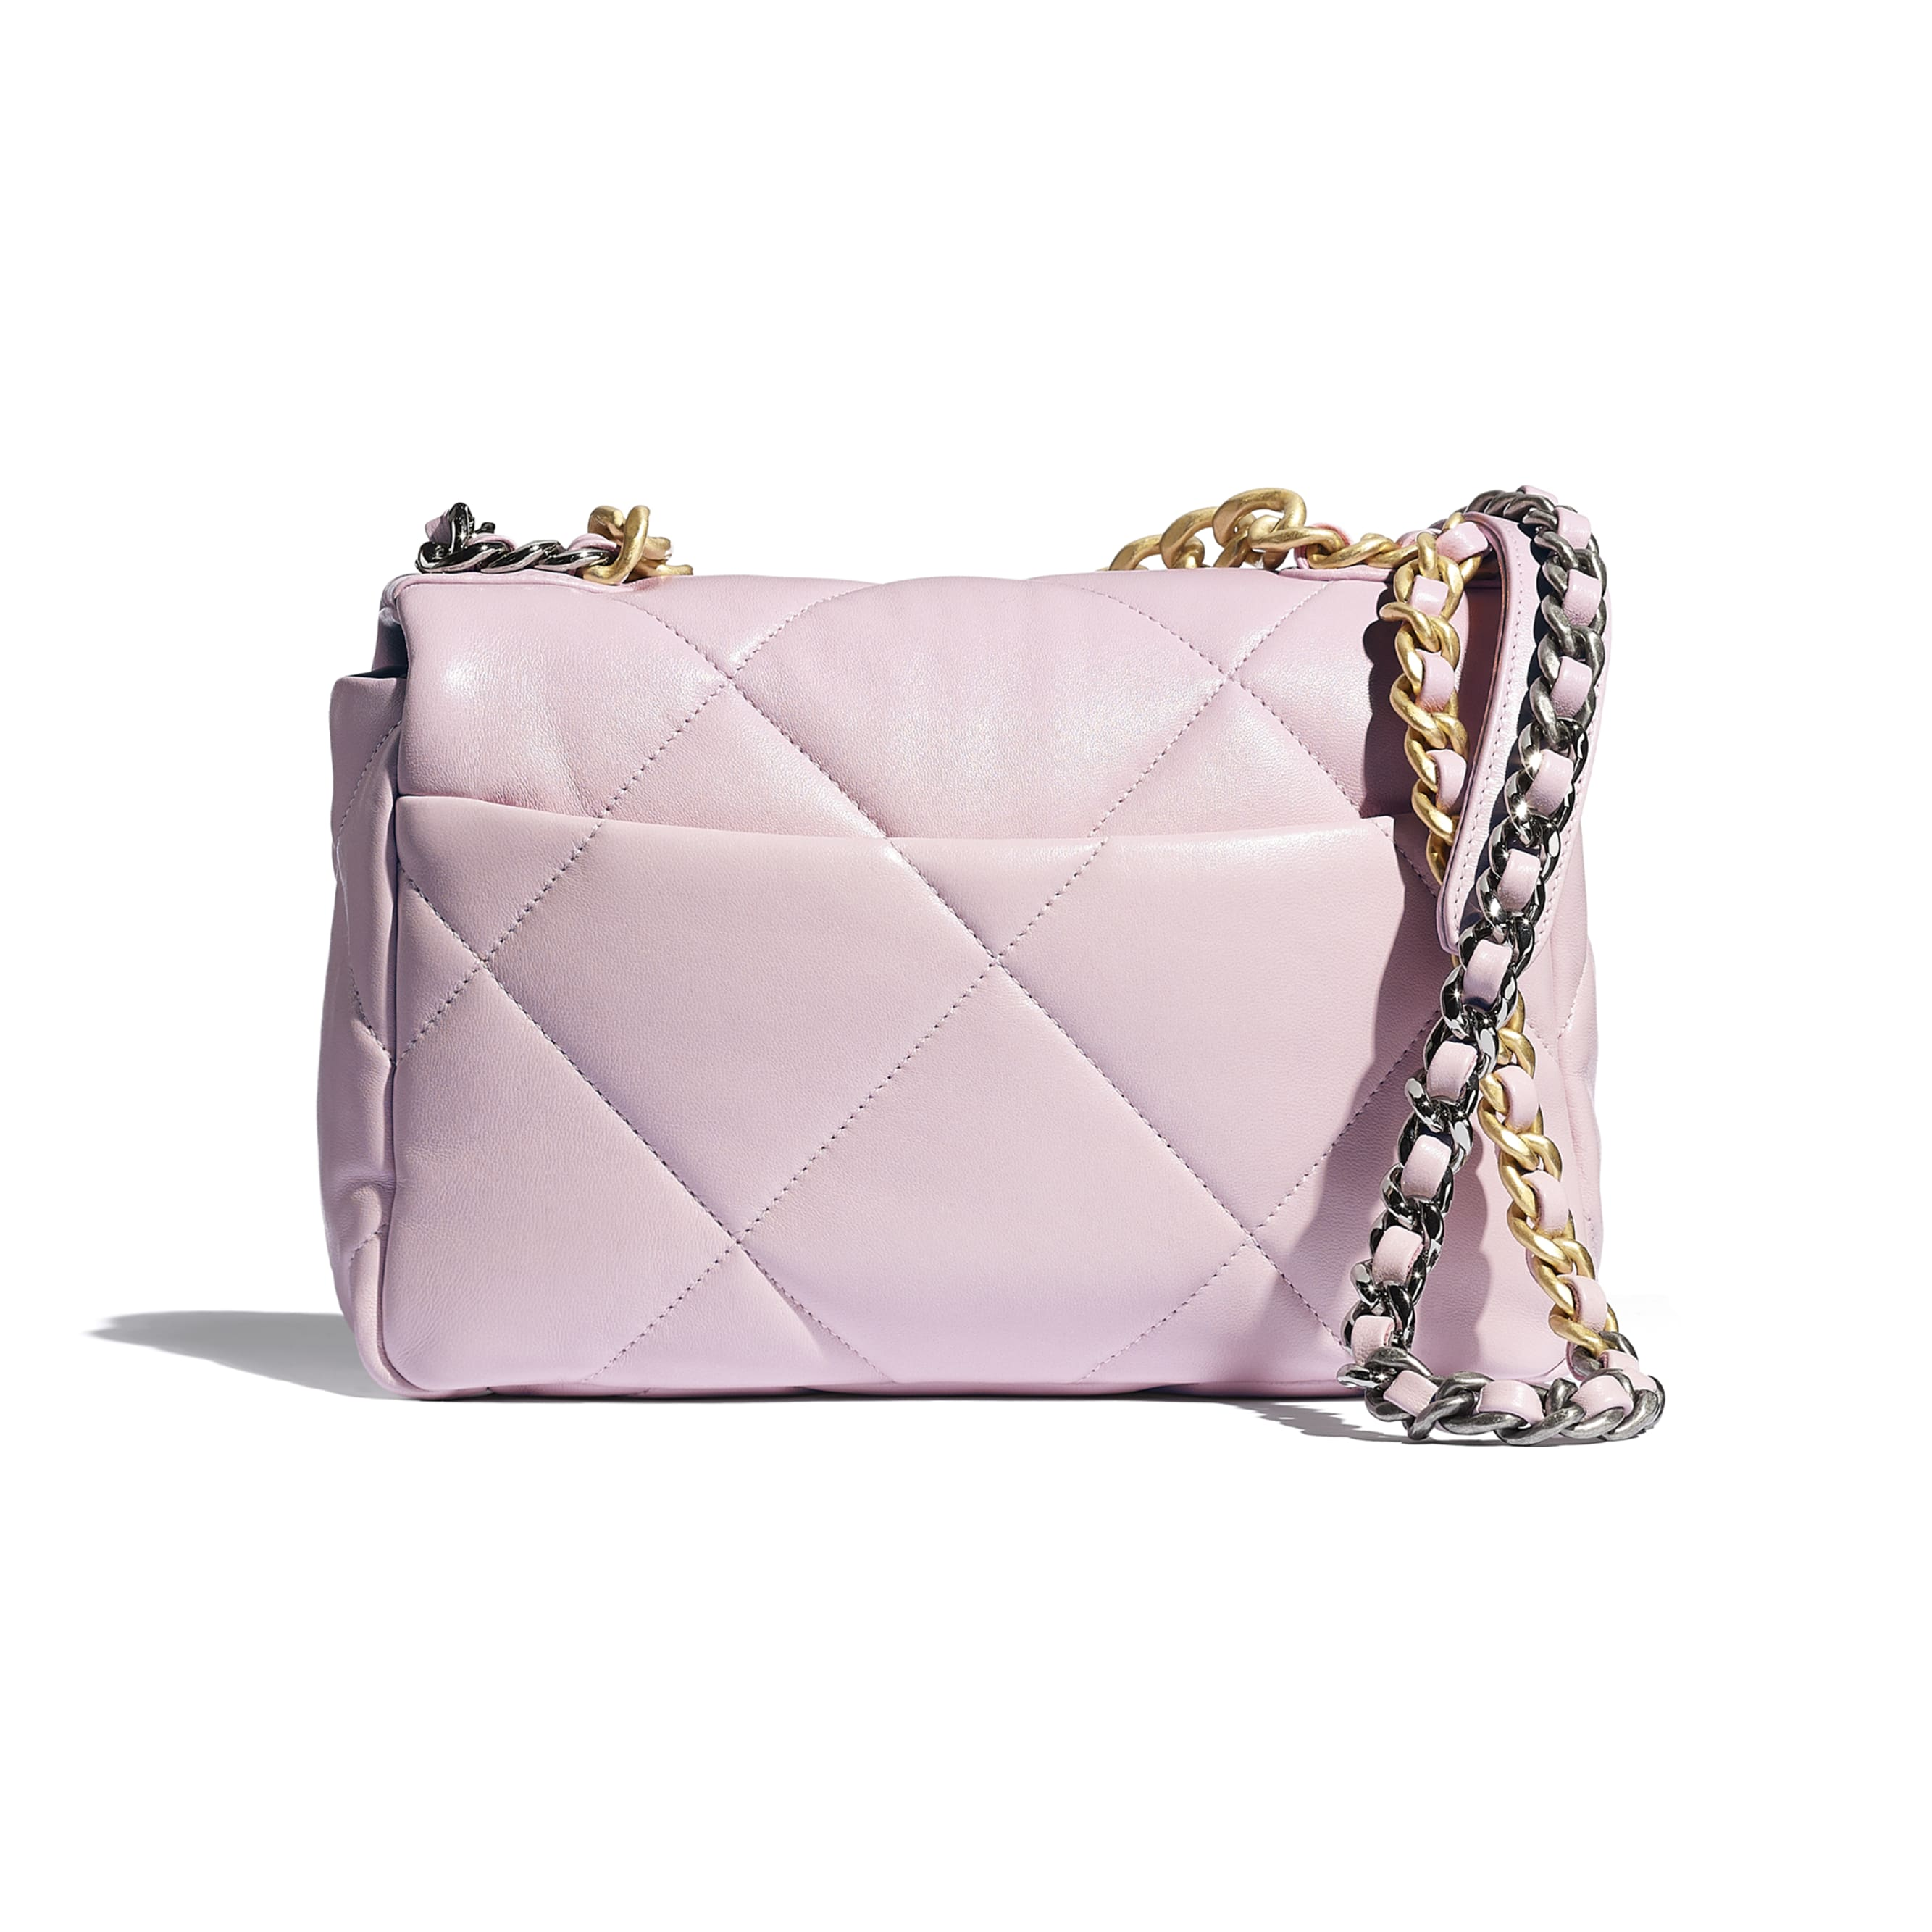 CHANEL 19 Handbag - Light Pink - Lambskin, Gold-Tone, Silver-Tone & Ruthenium-Finish Metal - CHANEL - Alternative view - see standard sized version